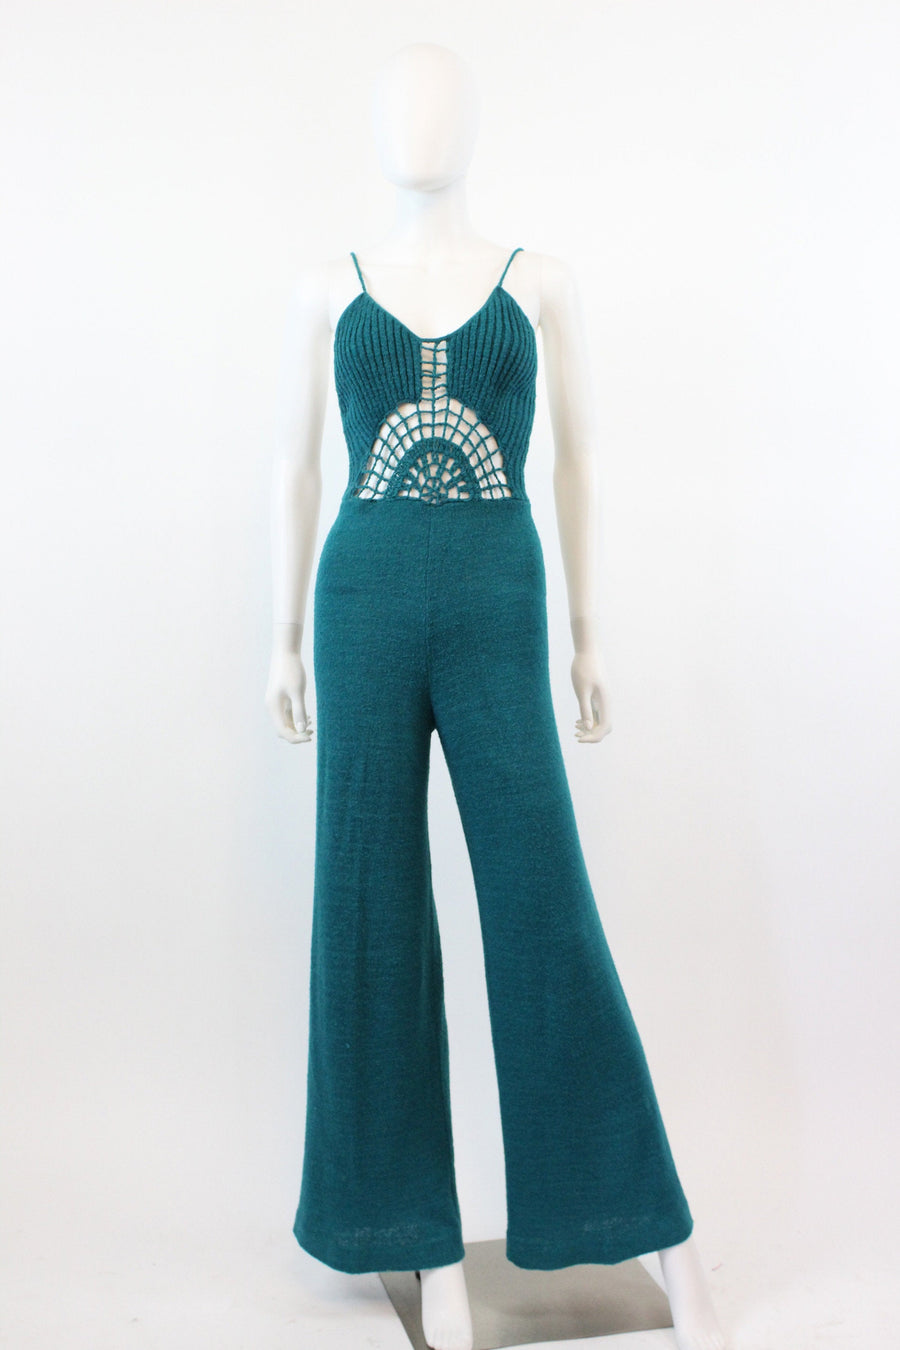 1970s knit spiderweb wide leg jumpsuit small | vintage teal midriff revealing one piece